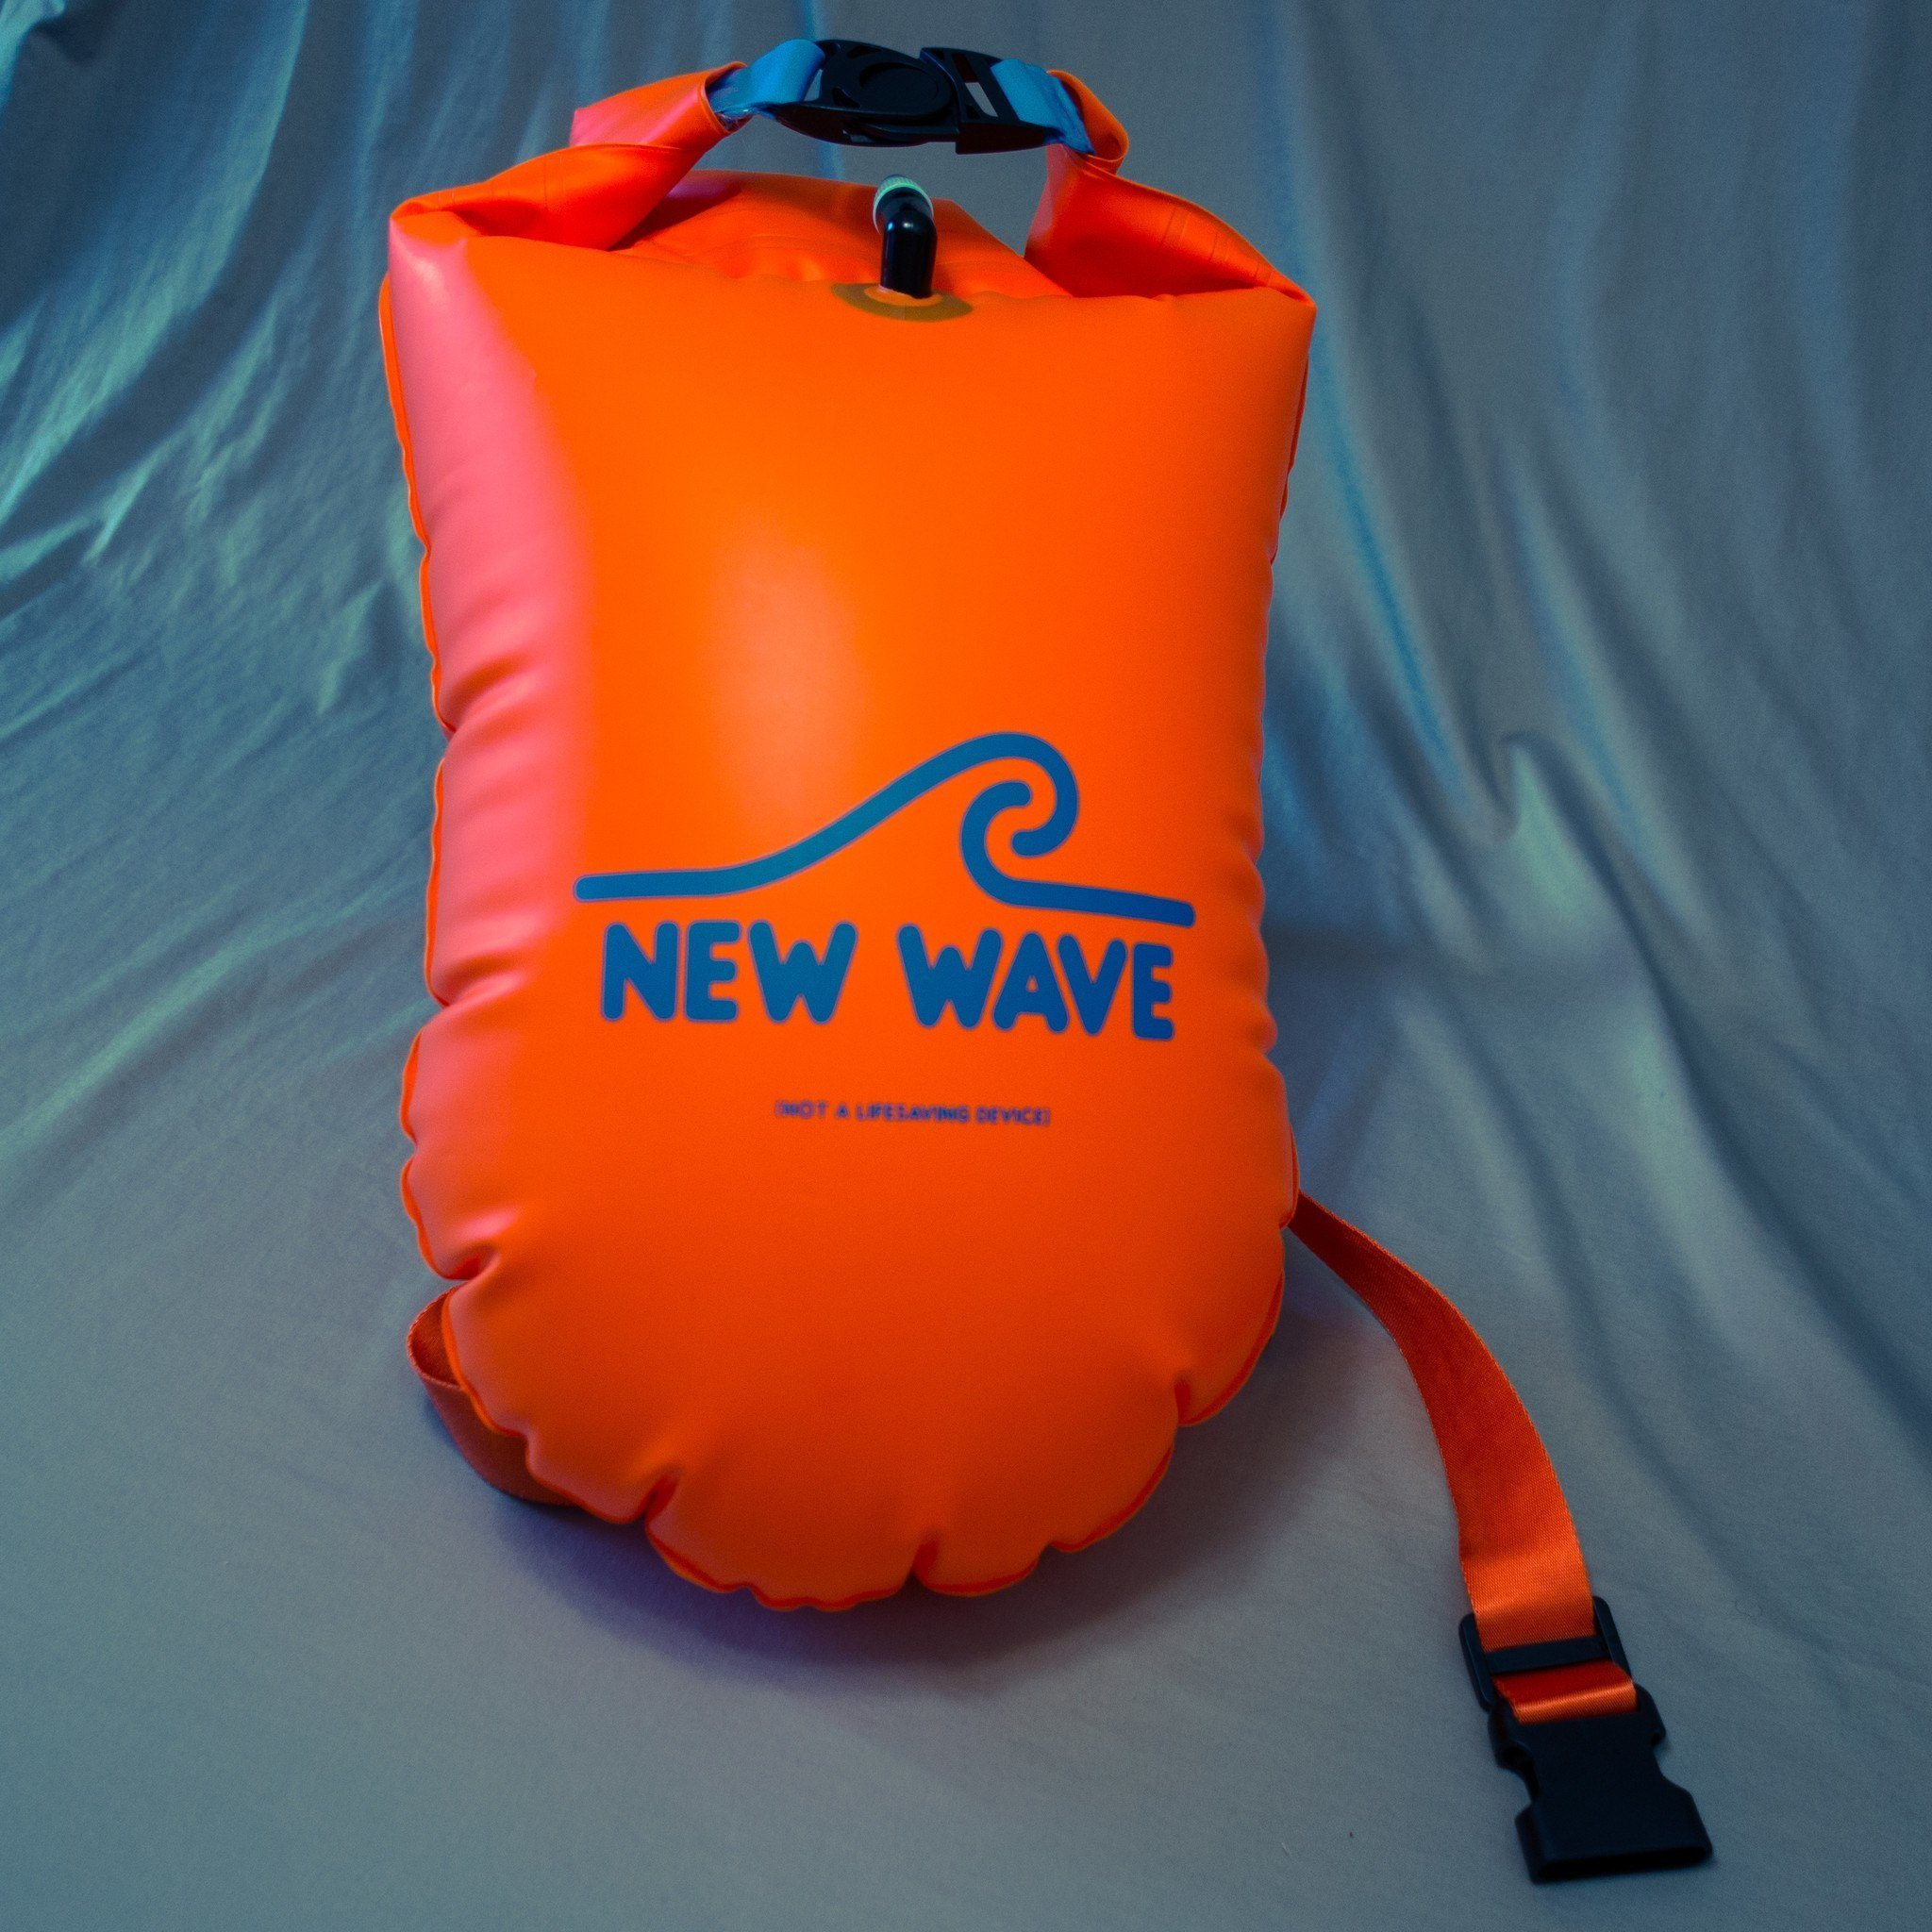 New Wave Open Water Swim Buoy - Large (20 liter) - TPU Or...